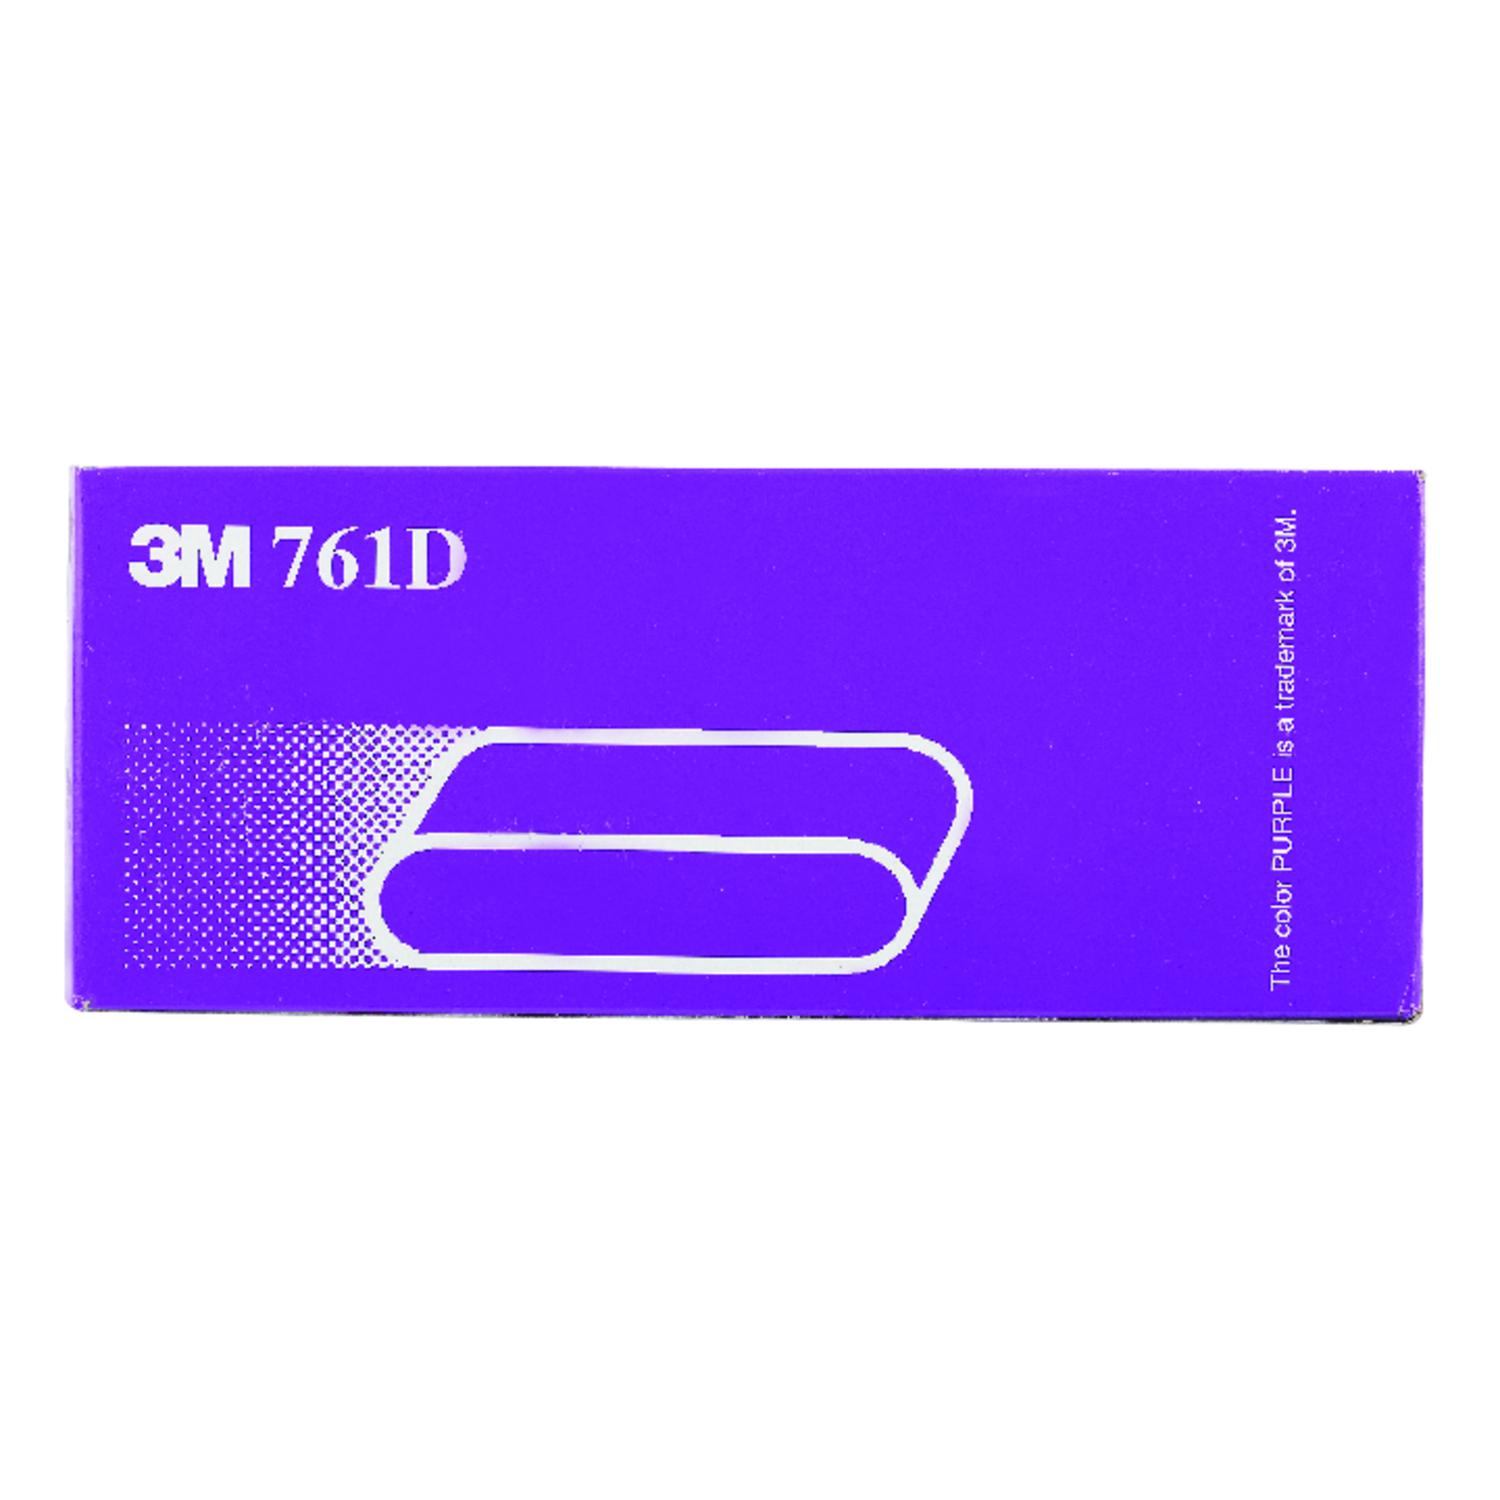 3M  24 inch  L x 4 in. W Ceramic  80 Grit Medium  Sanding Belt  1 pk